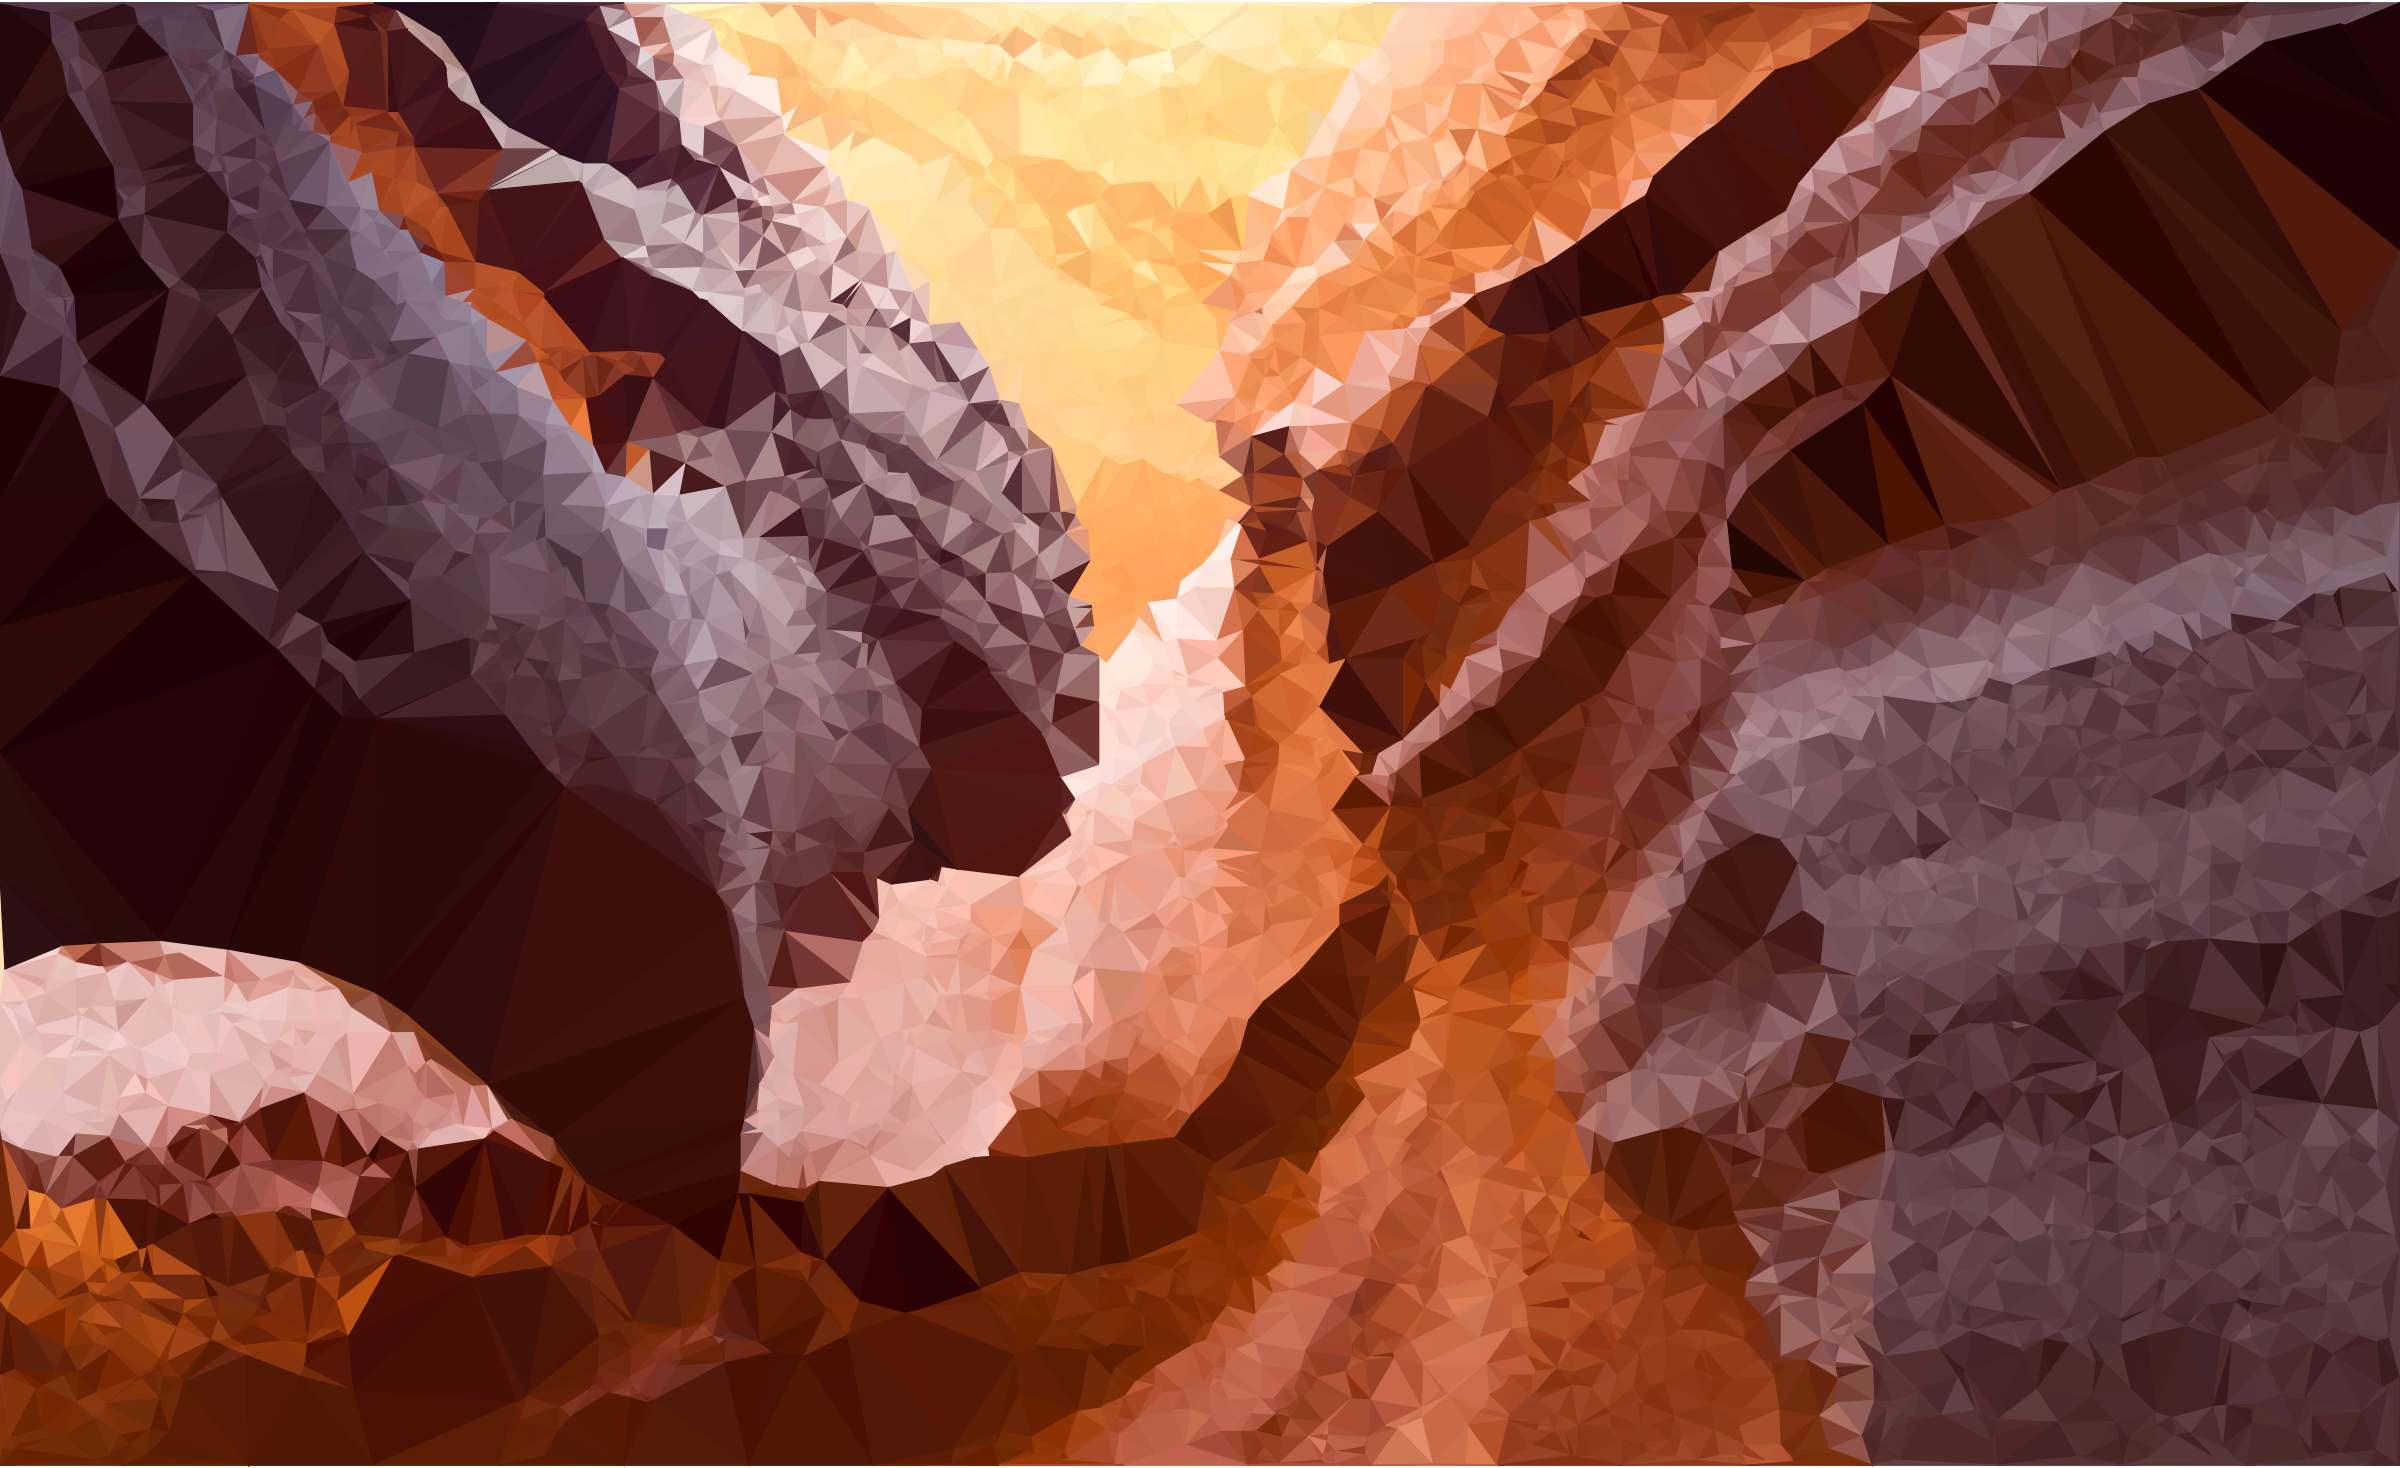 Low Poly Antelope Canyon by GDJ